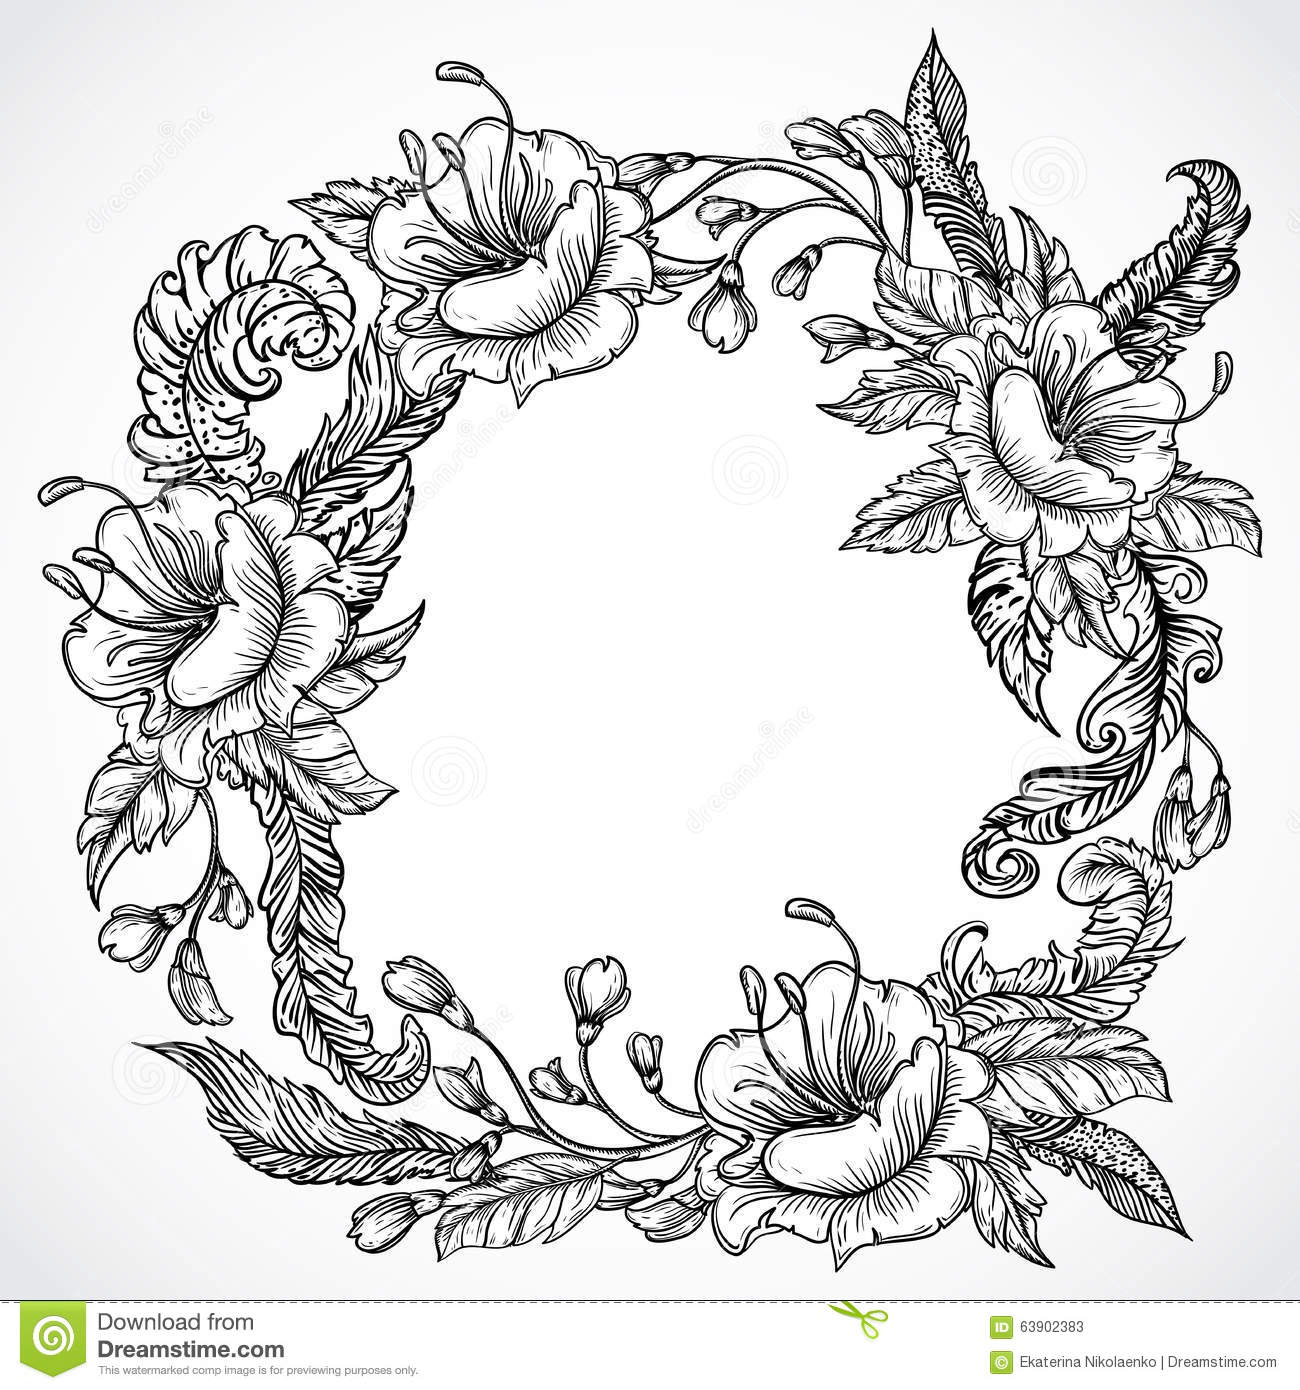 Vintage floral highly detailed hand drawn wreath of flowers and feathers.Retro banner, invitation, wedding card, scrap booking.